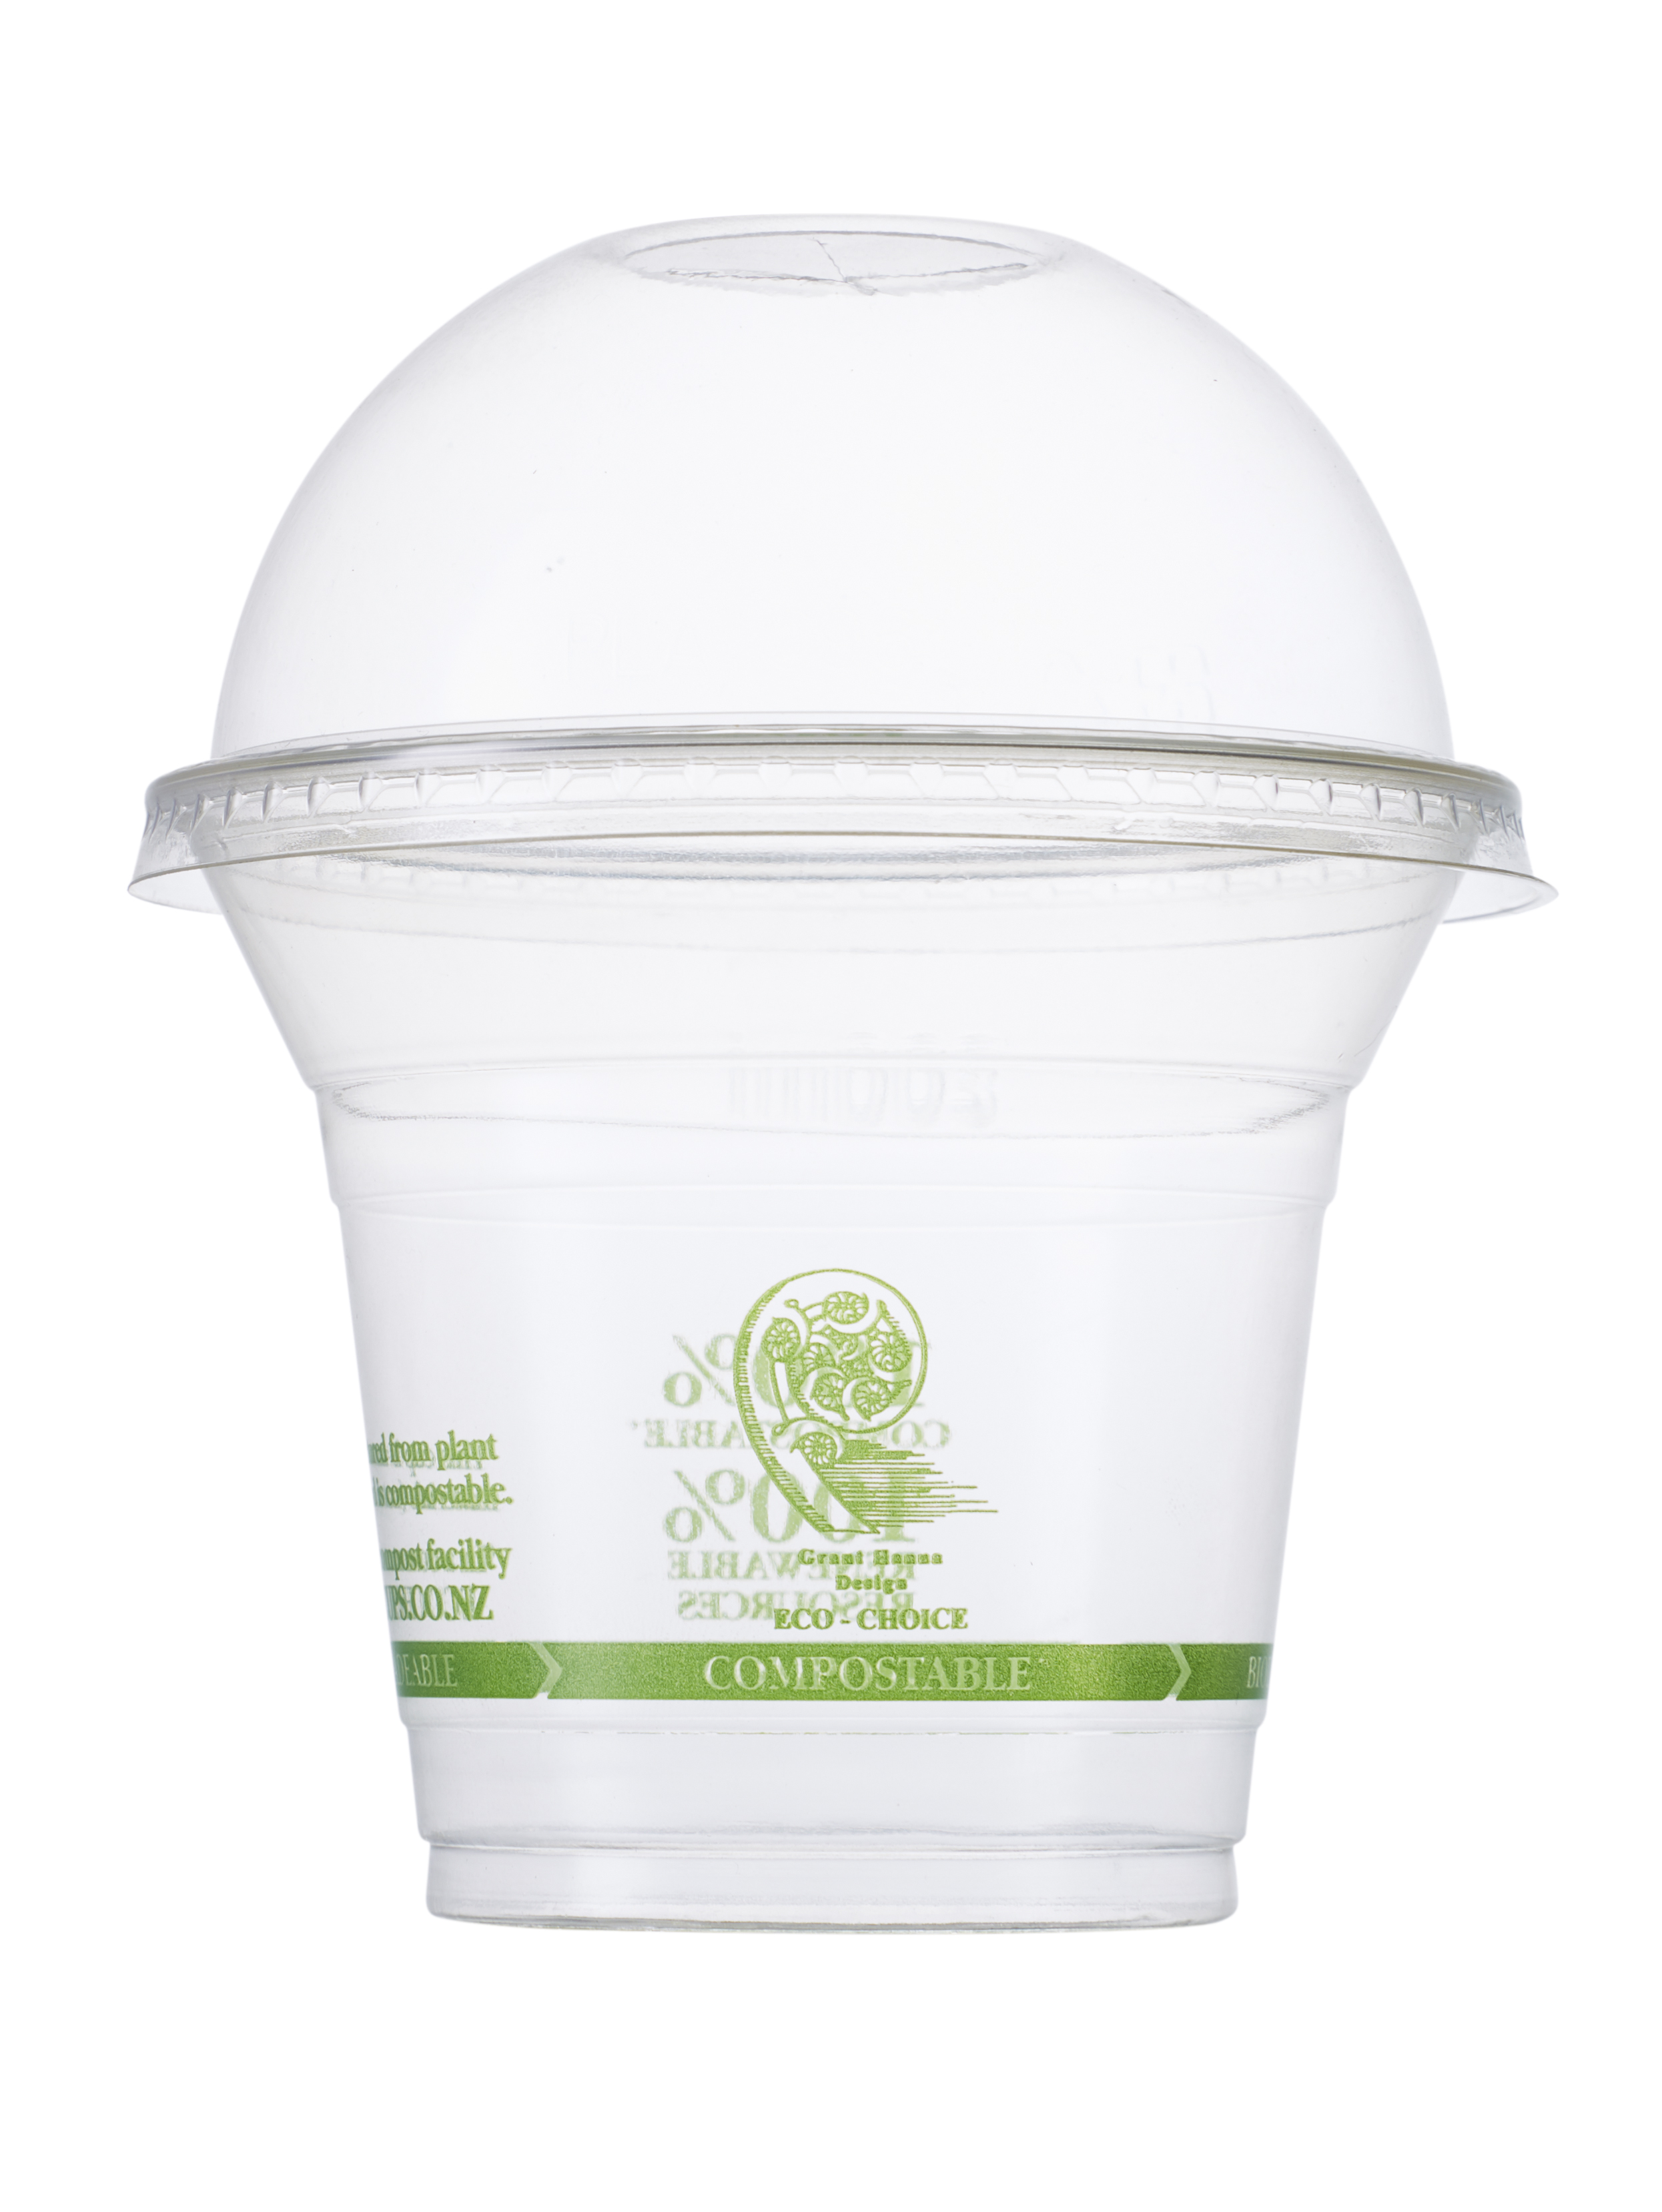 Cup_300 Dome.jpg